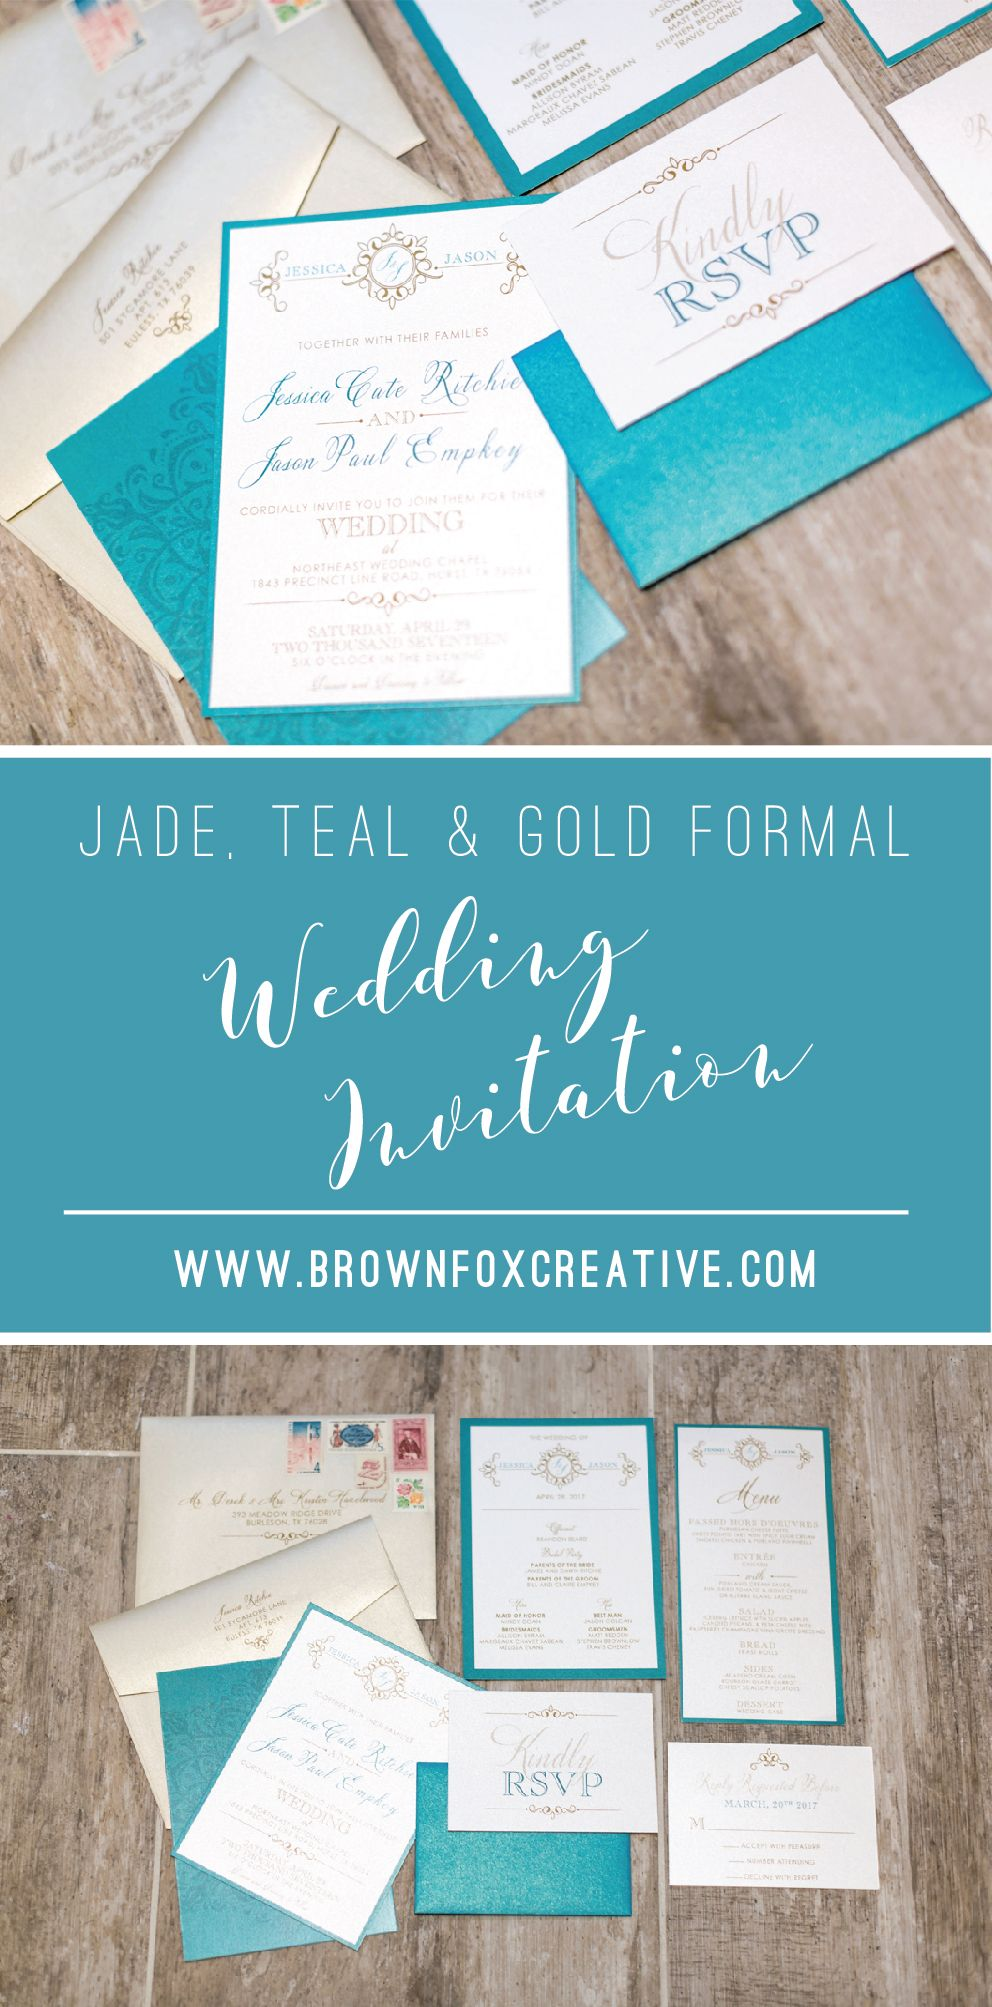 5x7 jade green teal and gold formal modern wedding invitation suite 5x7 jade green teal and gold formal modern wedding invitation suite with rsvp return address printing on the invitation envelope stopboris Gallery